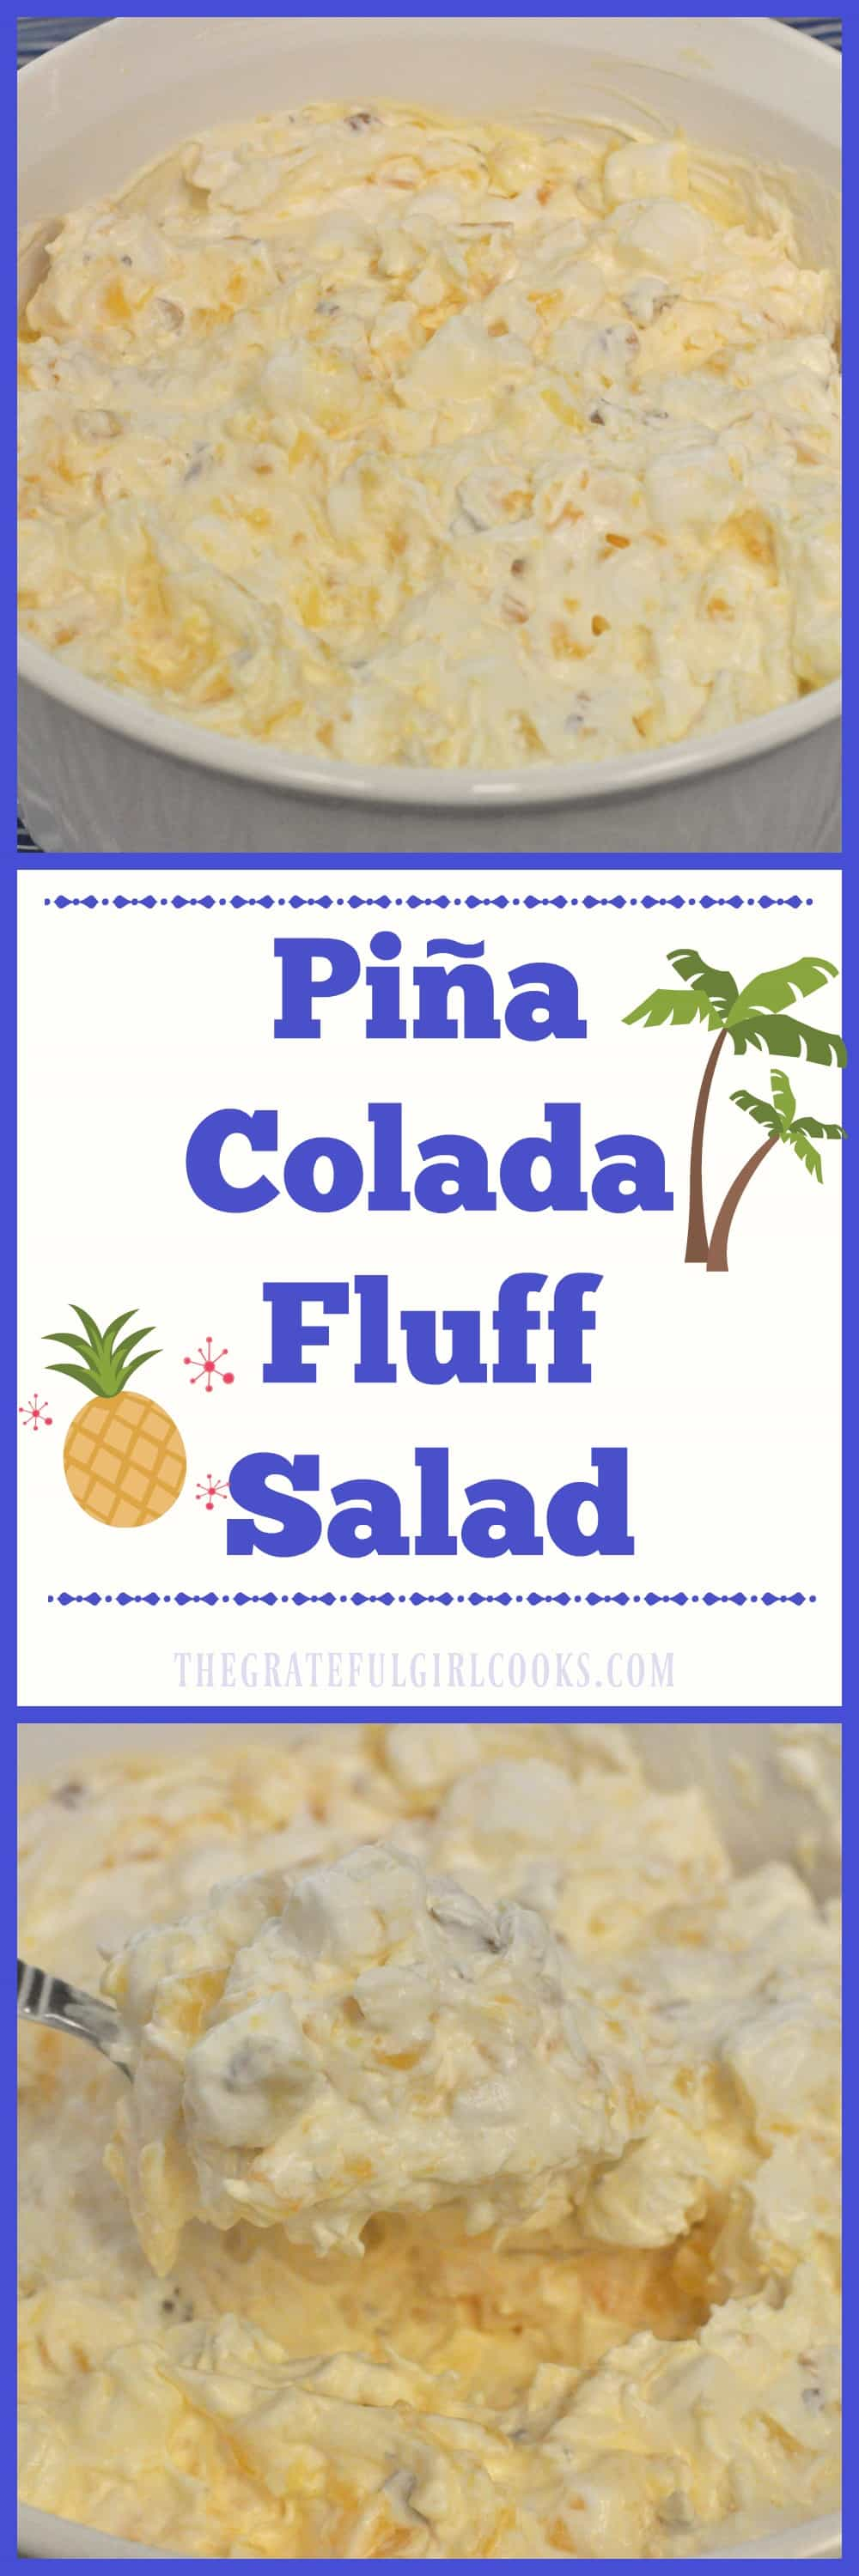 Piña Colada Fluff Salad / The Grateful Girl Cooks! This sweet, delicious tropical tasting salad only takes 5 minutes to prepare and serves 8!